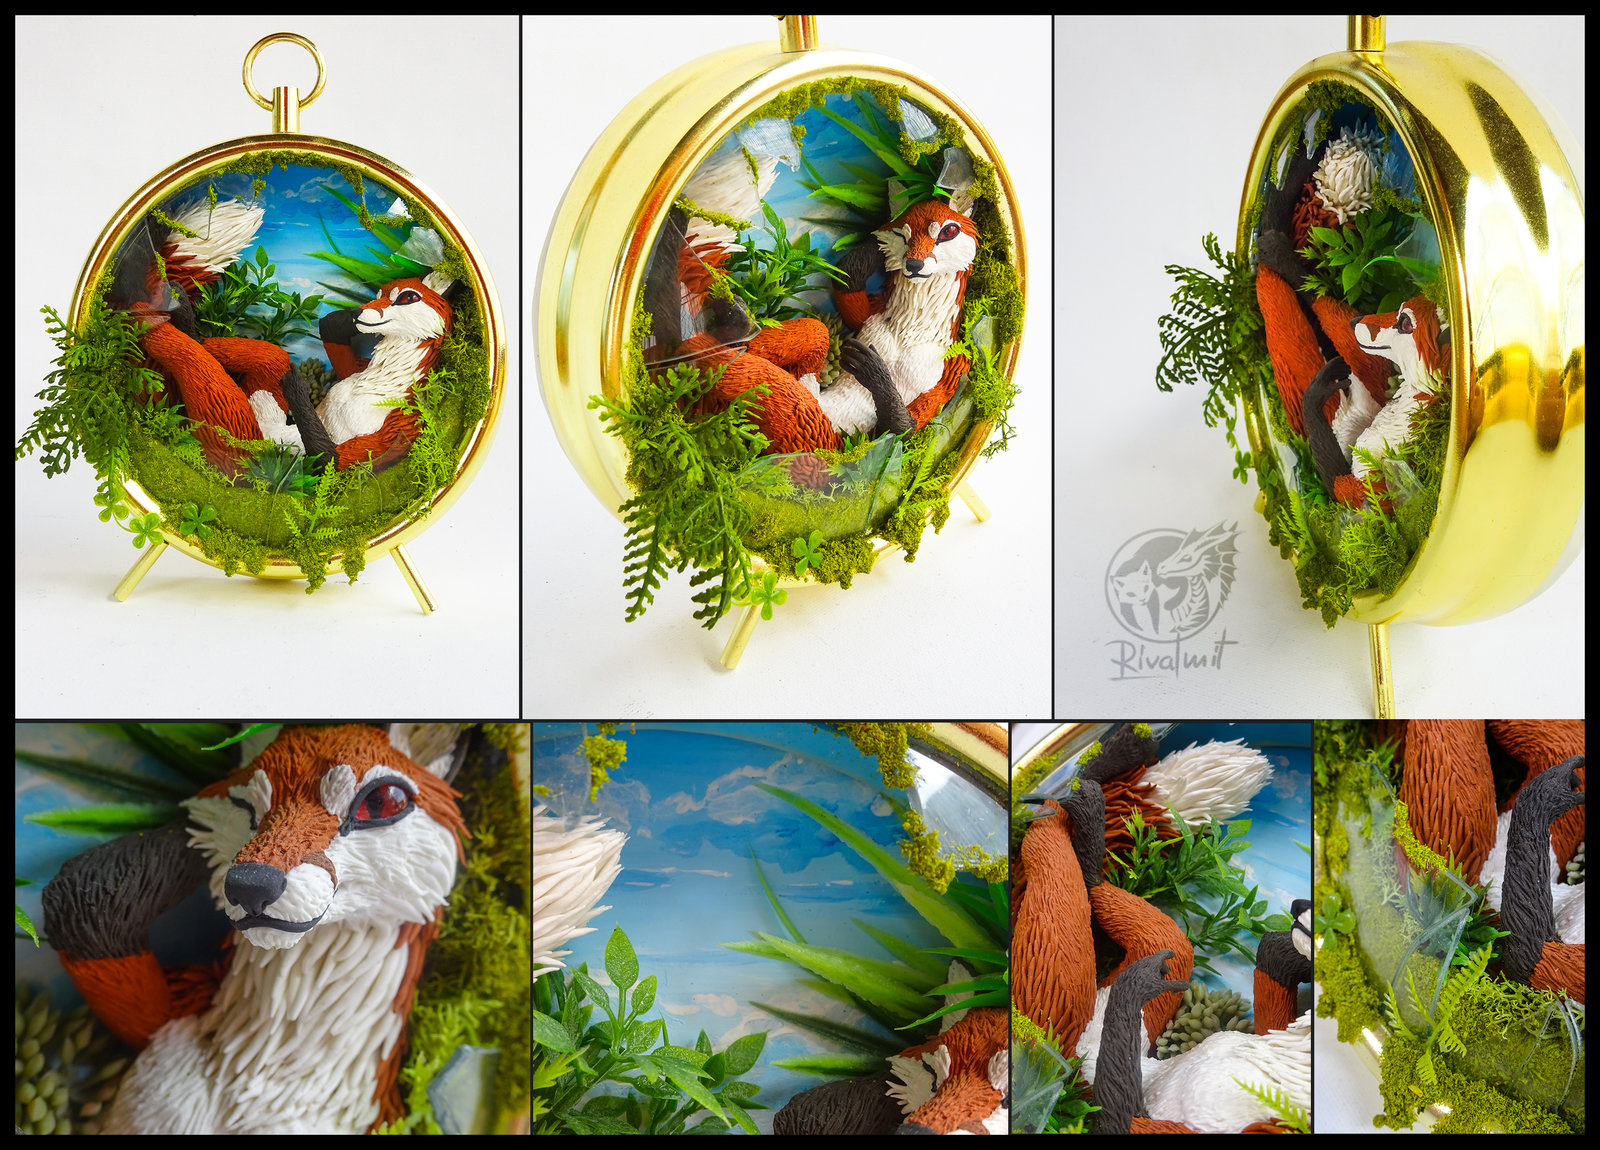 sculpture fox ef24 The fox, the looking glass and no wardrobe